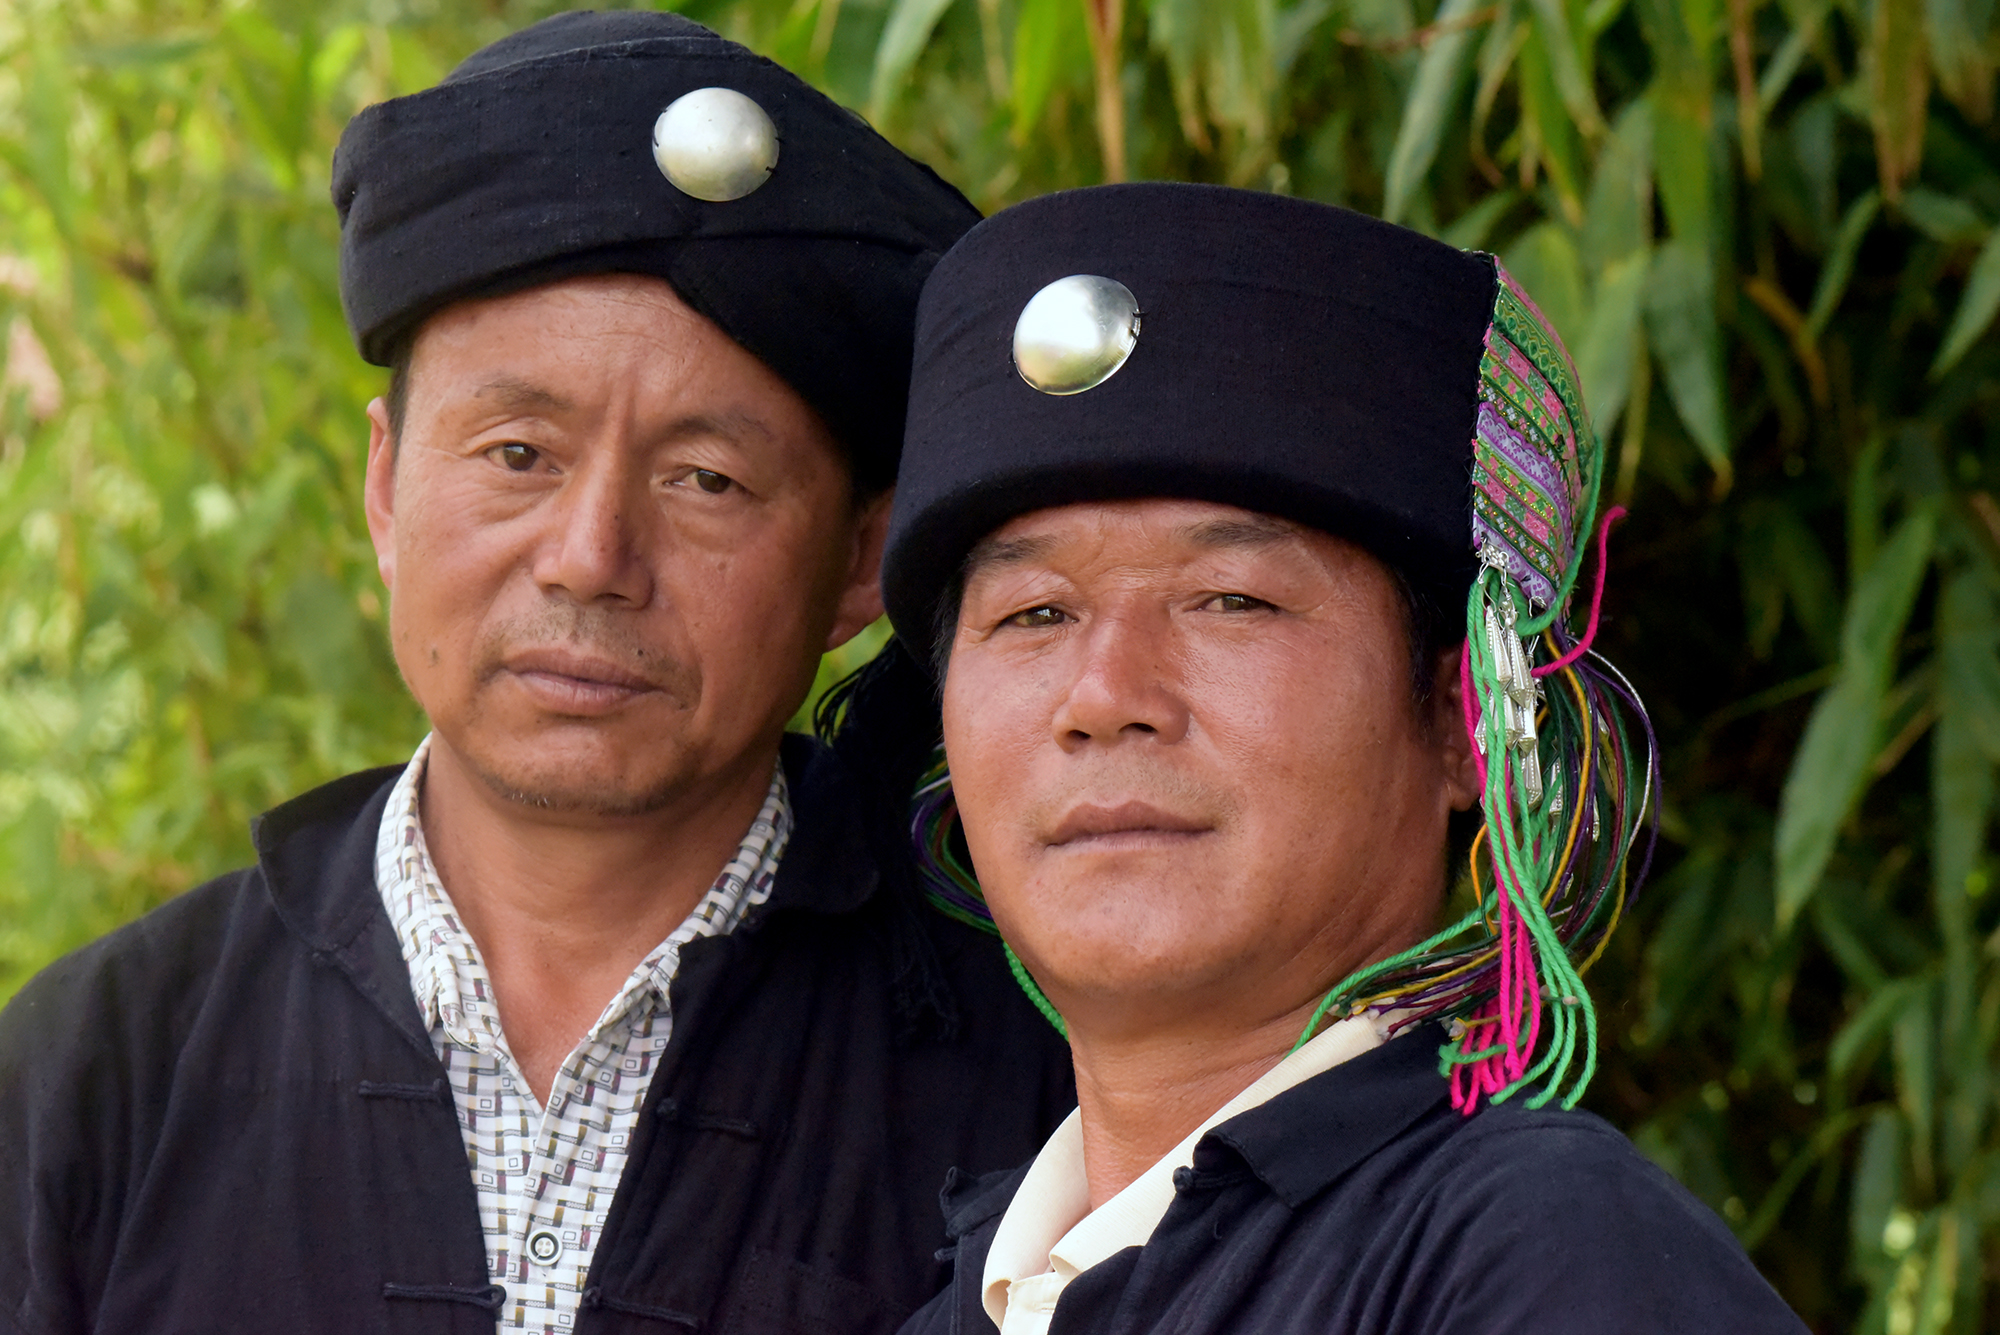 Bai Jin Bao and Ni Wei Zhe, Inheritors of Intangible Cultural Heritage, Yangjie village.